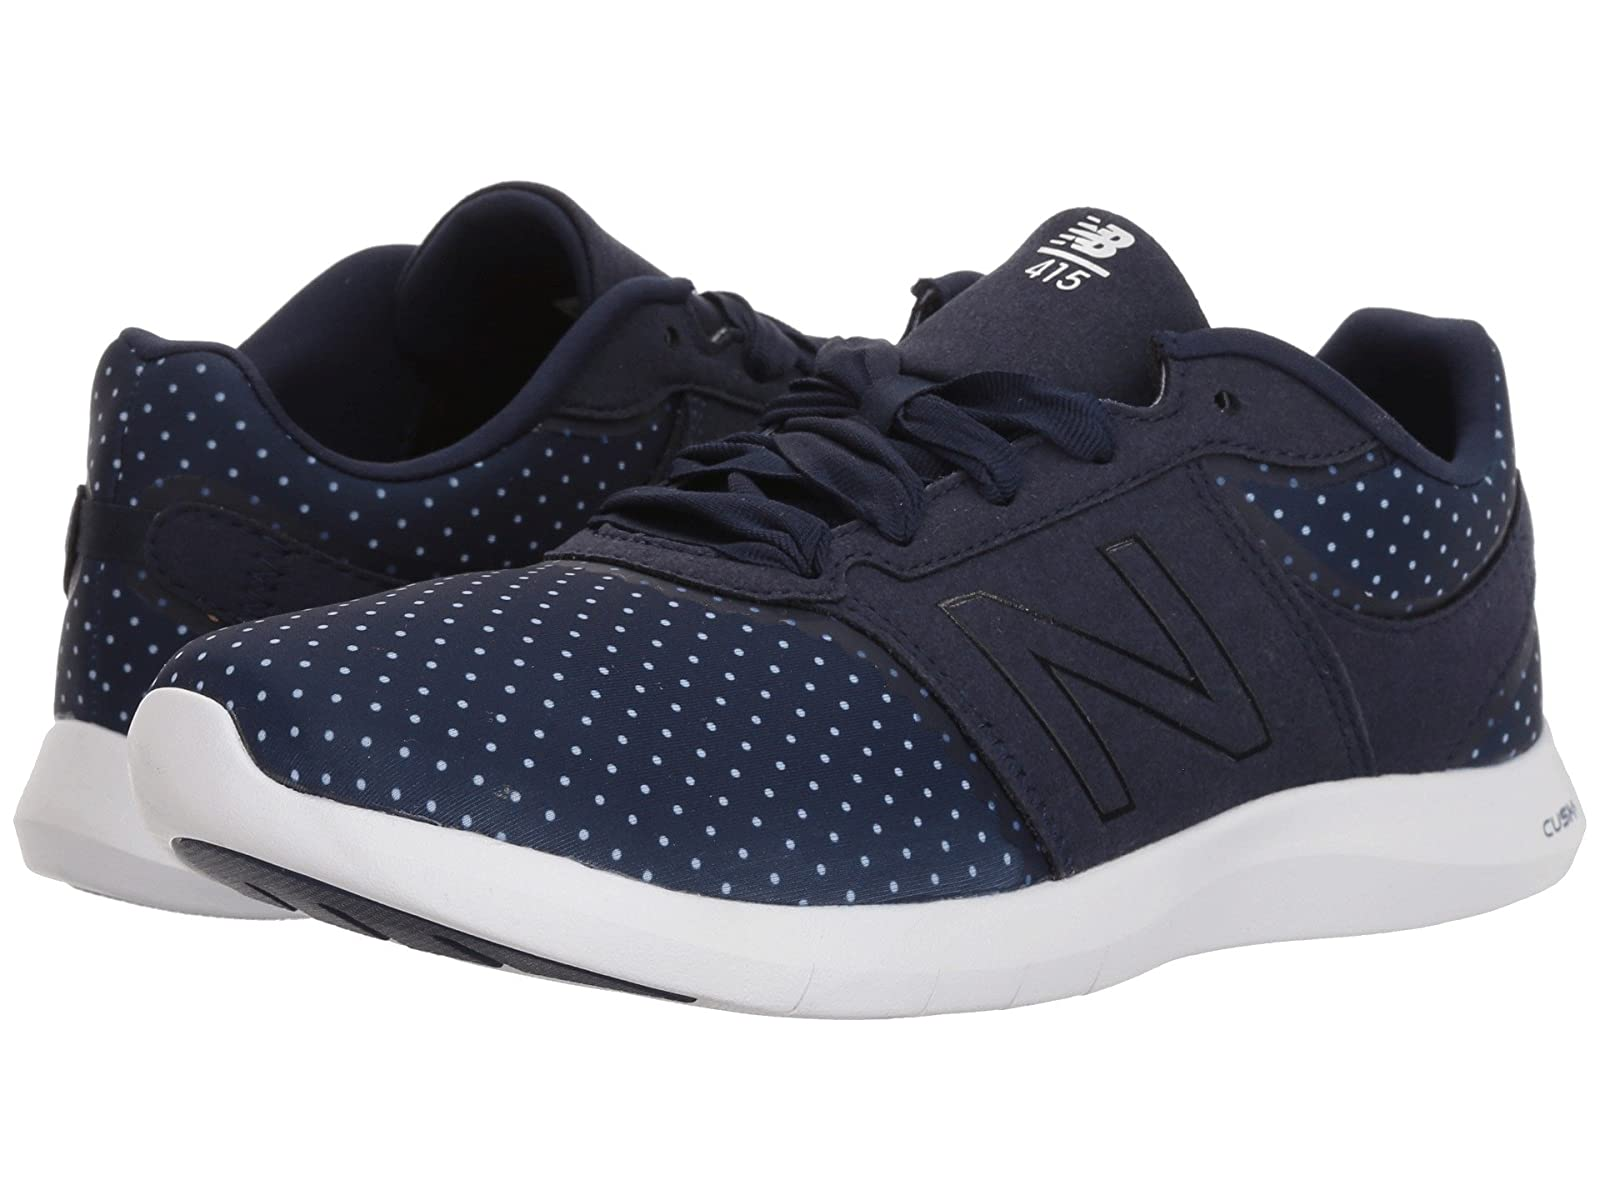 New Balance WL415v1Cheap and distinctive eye-catching shoes